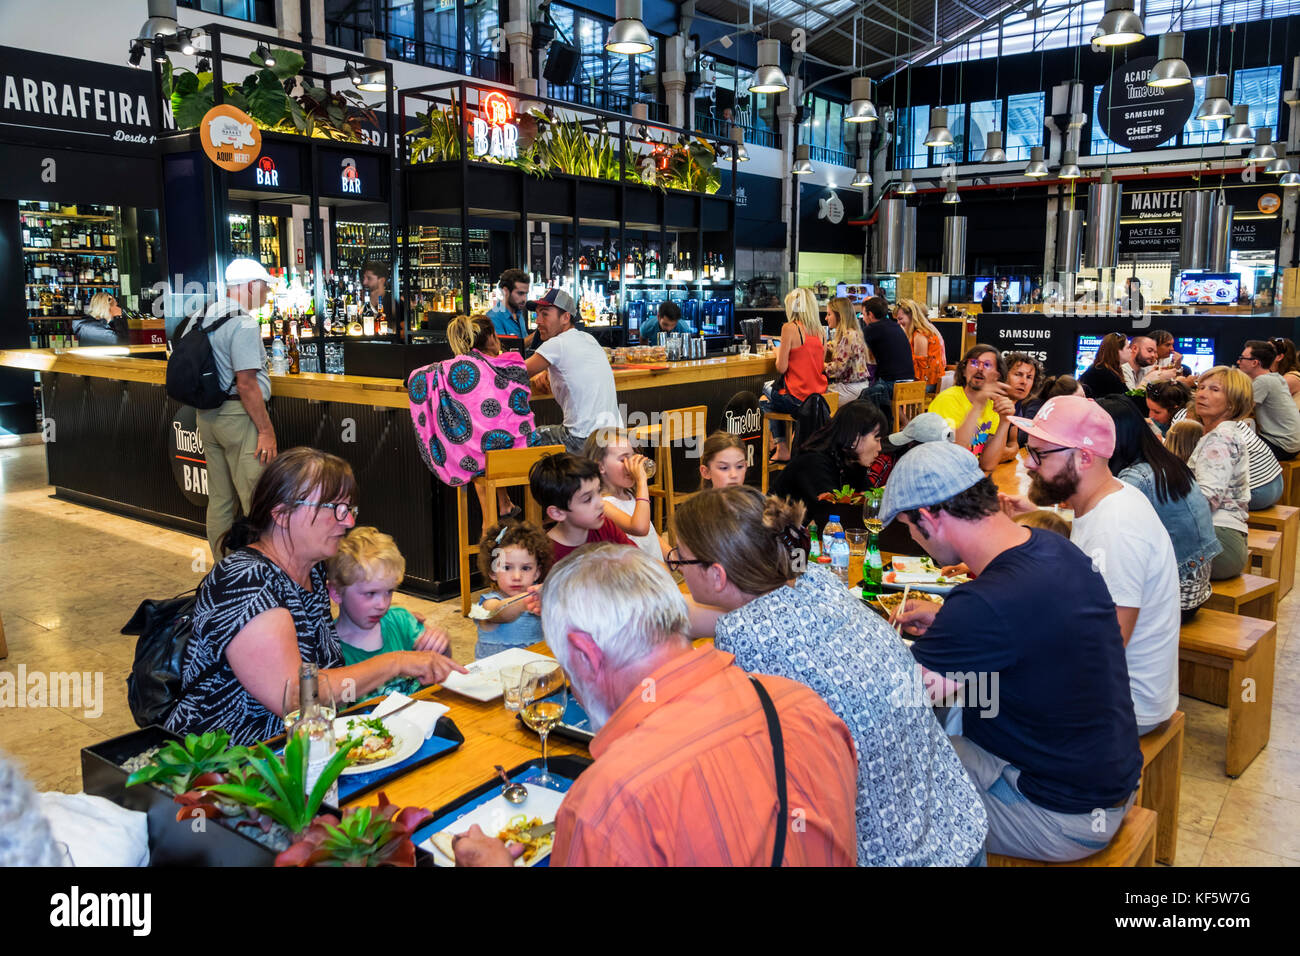 Lisbon Portugal Cais do Sodre Mercado Da Ribeira Time Out Market market hall food court dining tables crowded busy - Stock Image